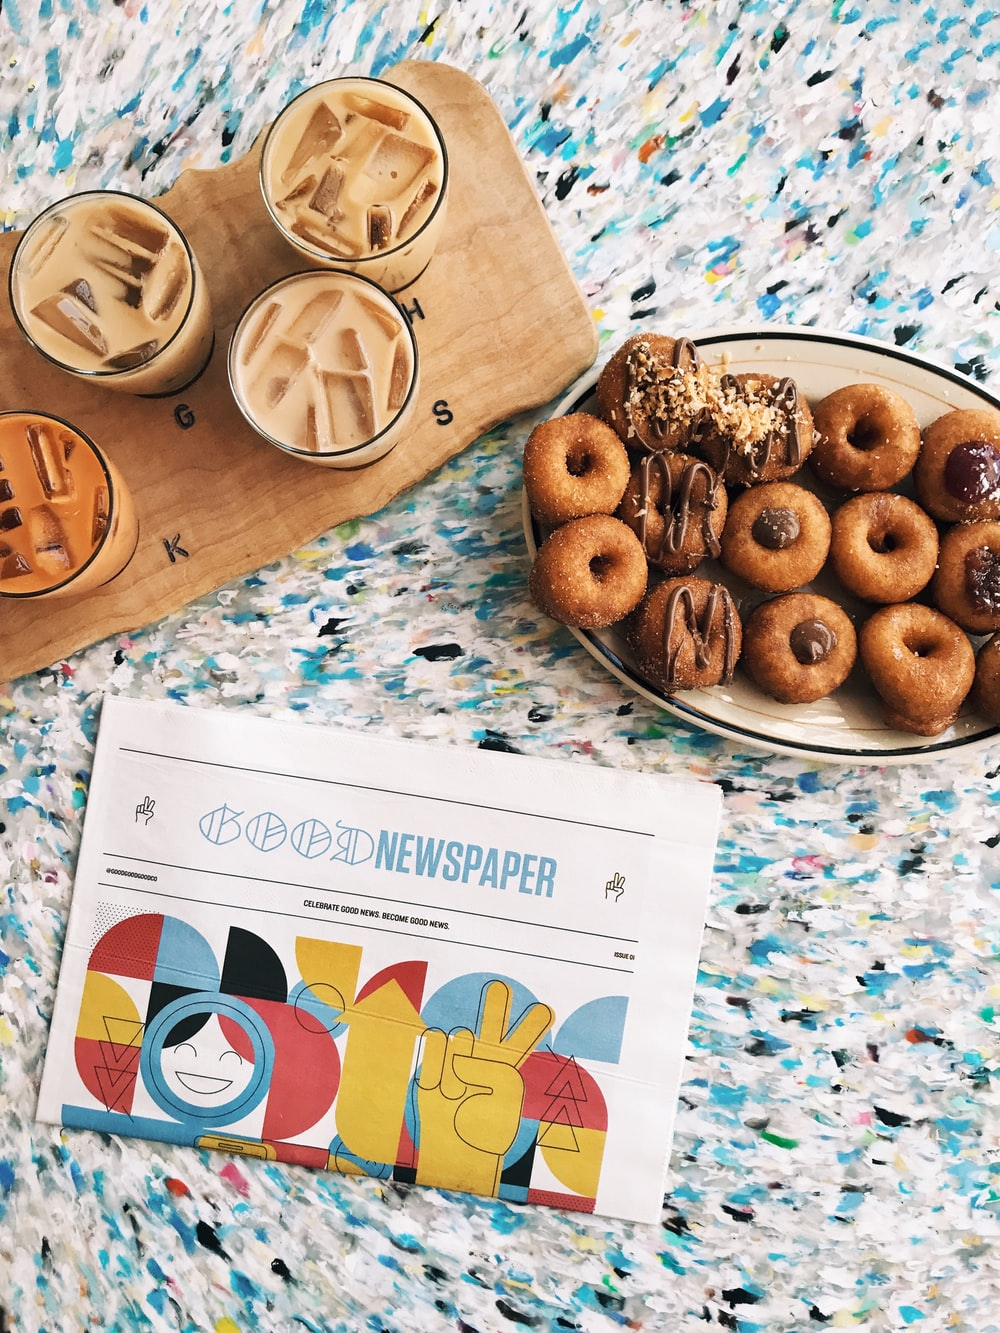 doughnuts on oval beige ceramic plate beside four glass cups on brown wooden board